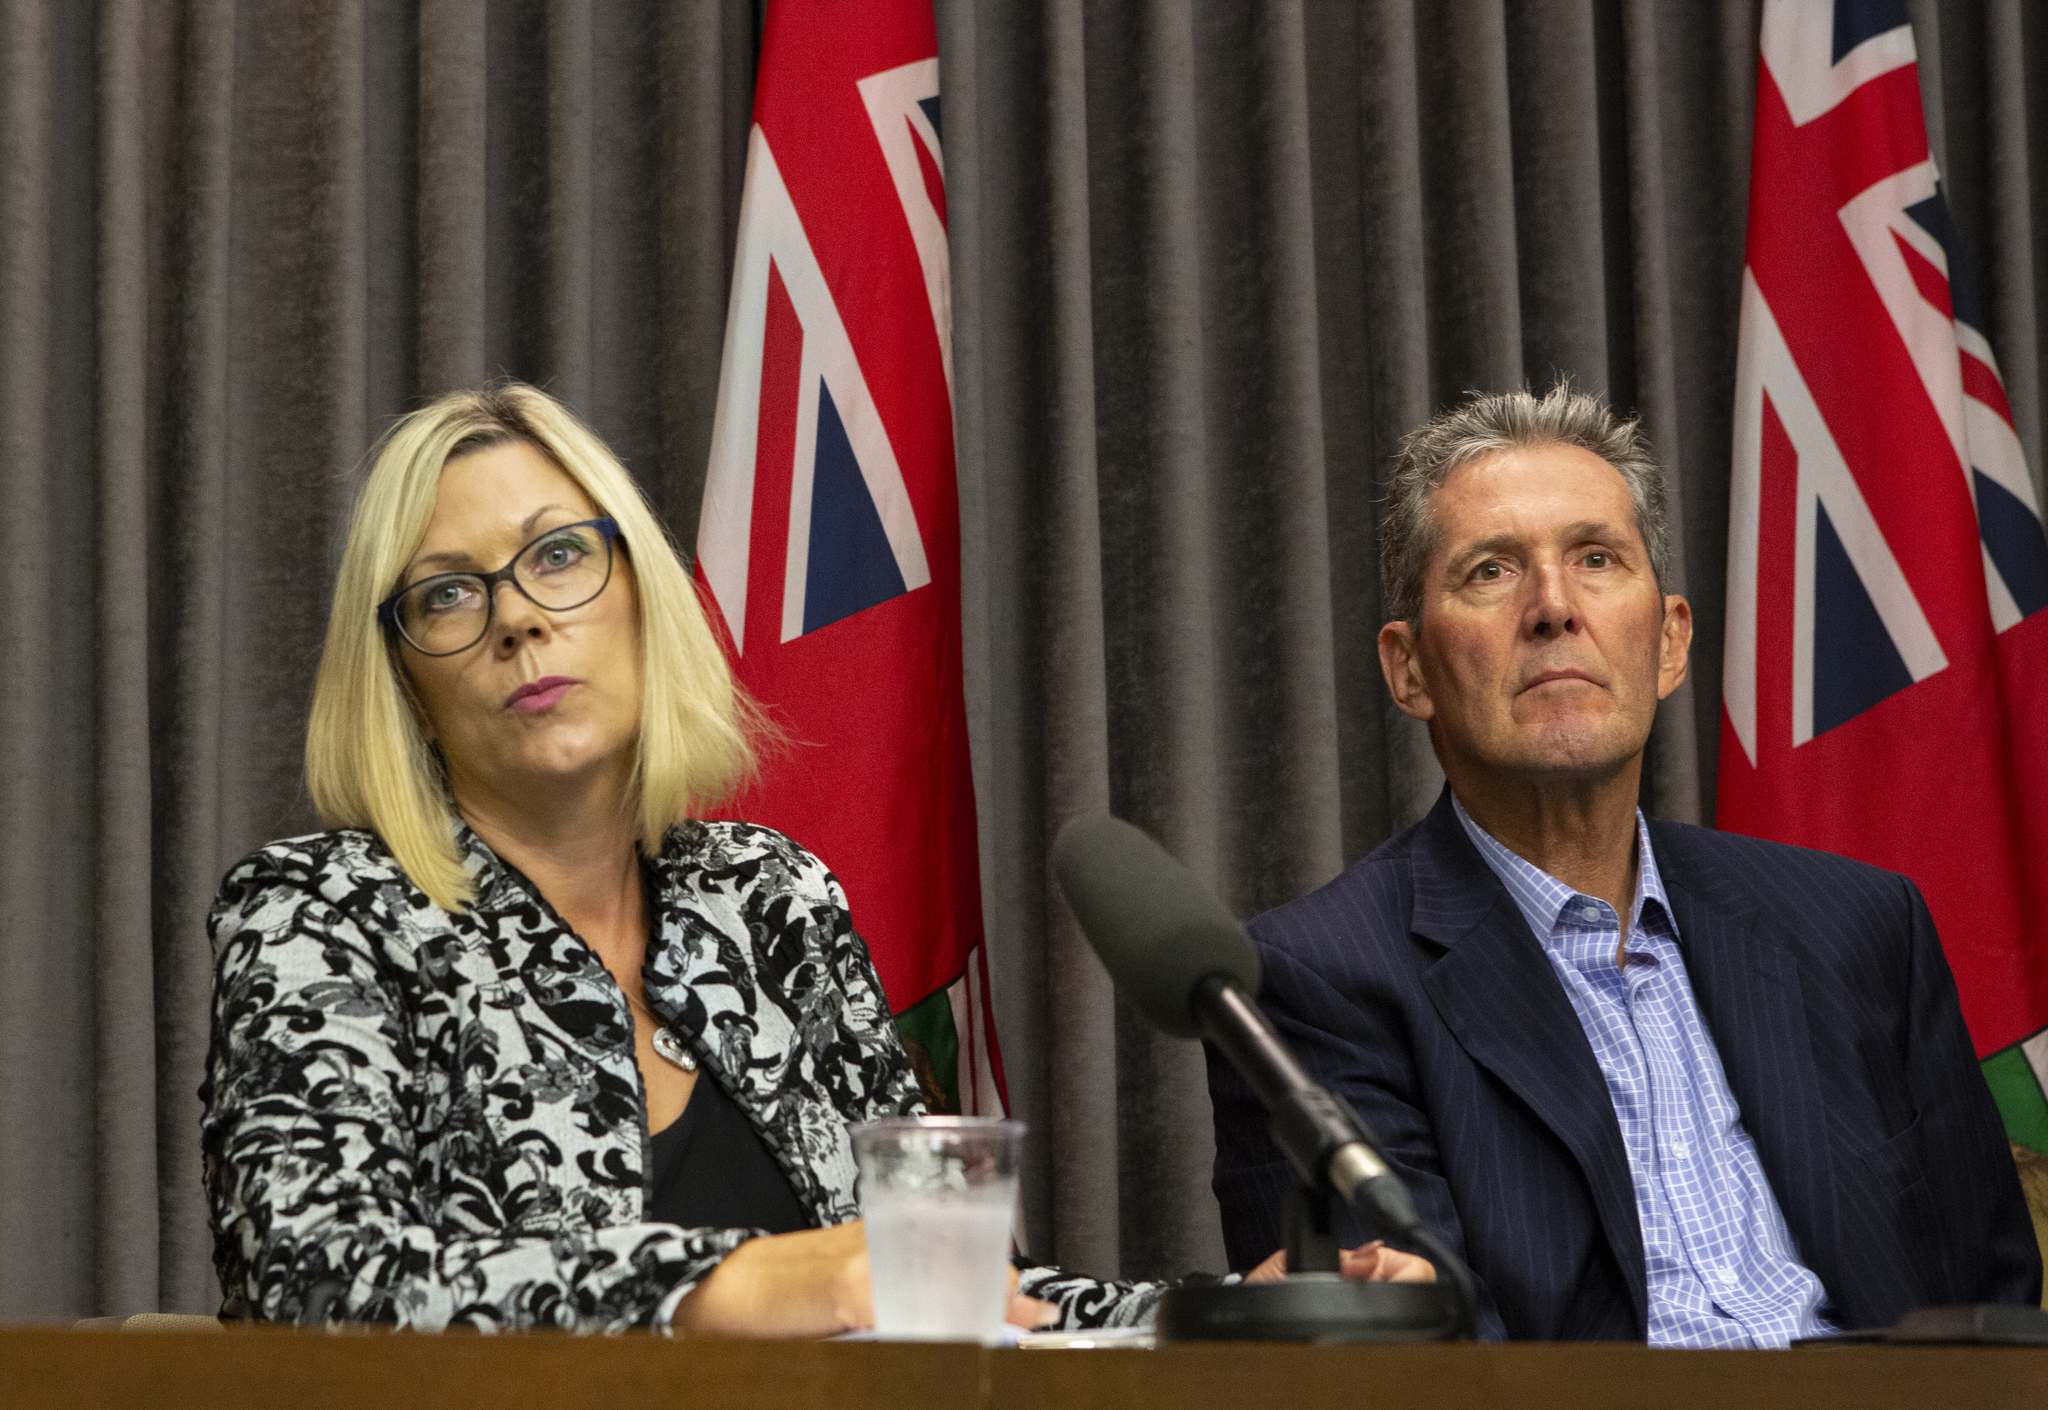 ANDREW RYAN / WINNIPEG FREE PRESS FILES</p><p>Sustainable Development Minister Rochelle Squires, left, and Manitoba Premier Brian Pallister have refuted the notion the government delayed the release of the bombshell CEC report.</p>